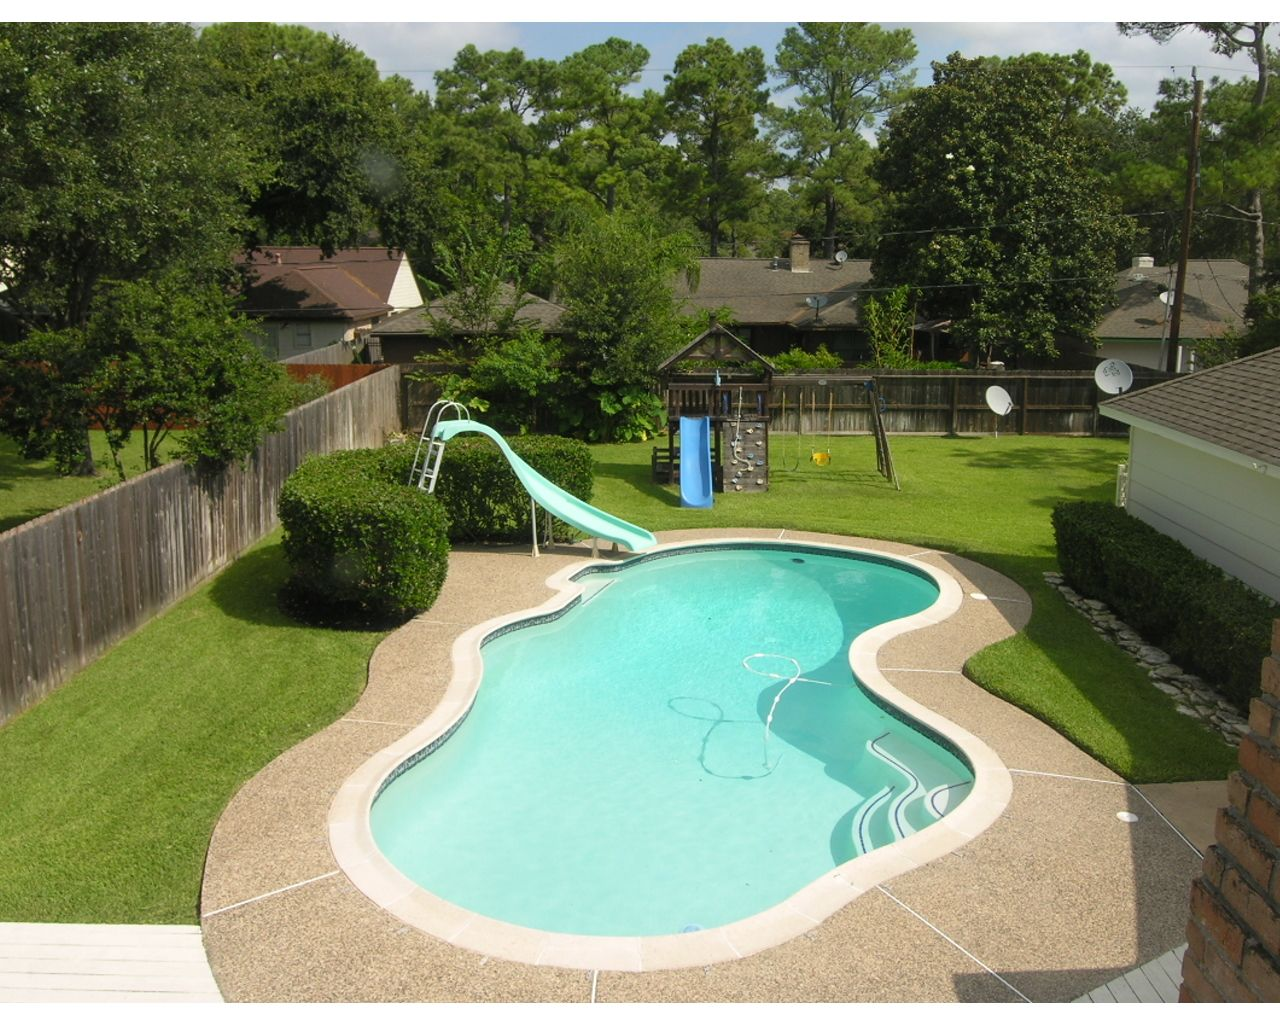 Backyard pools great view of large backyard pool but for Pool designs for small backyards